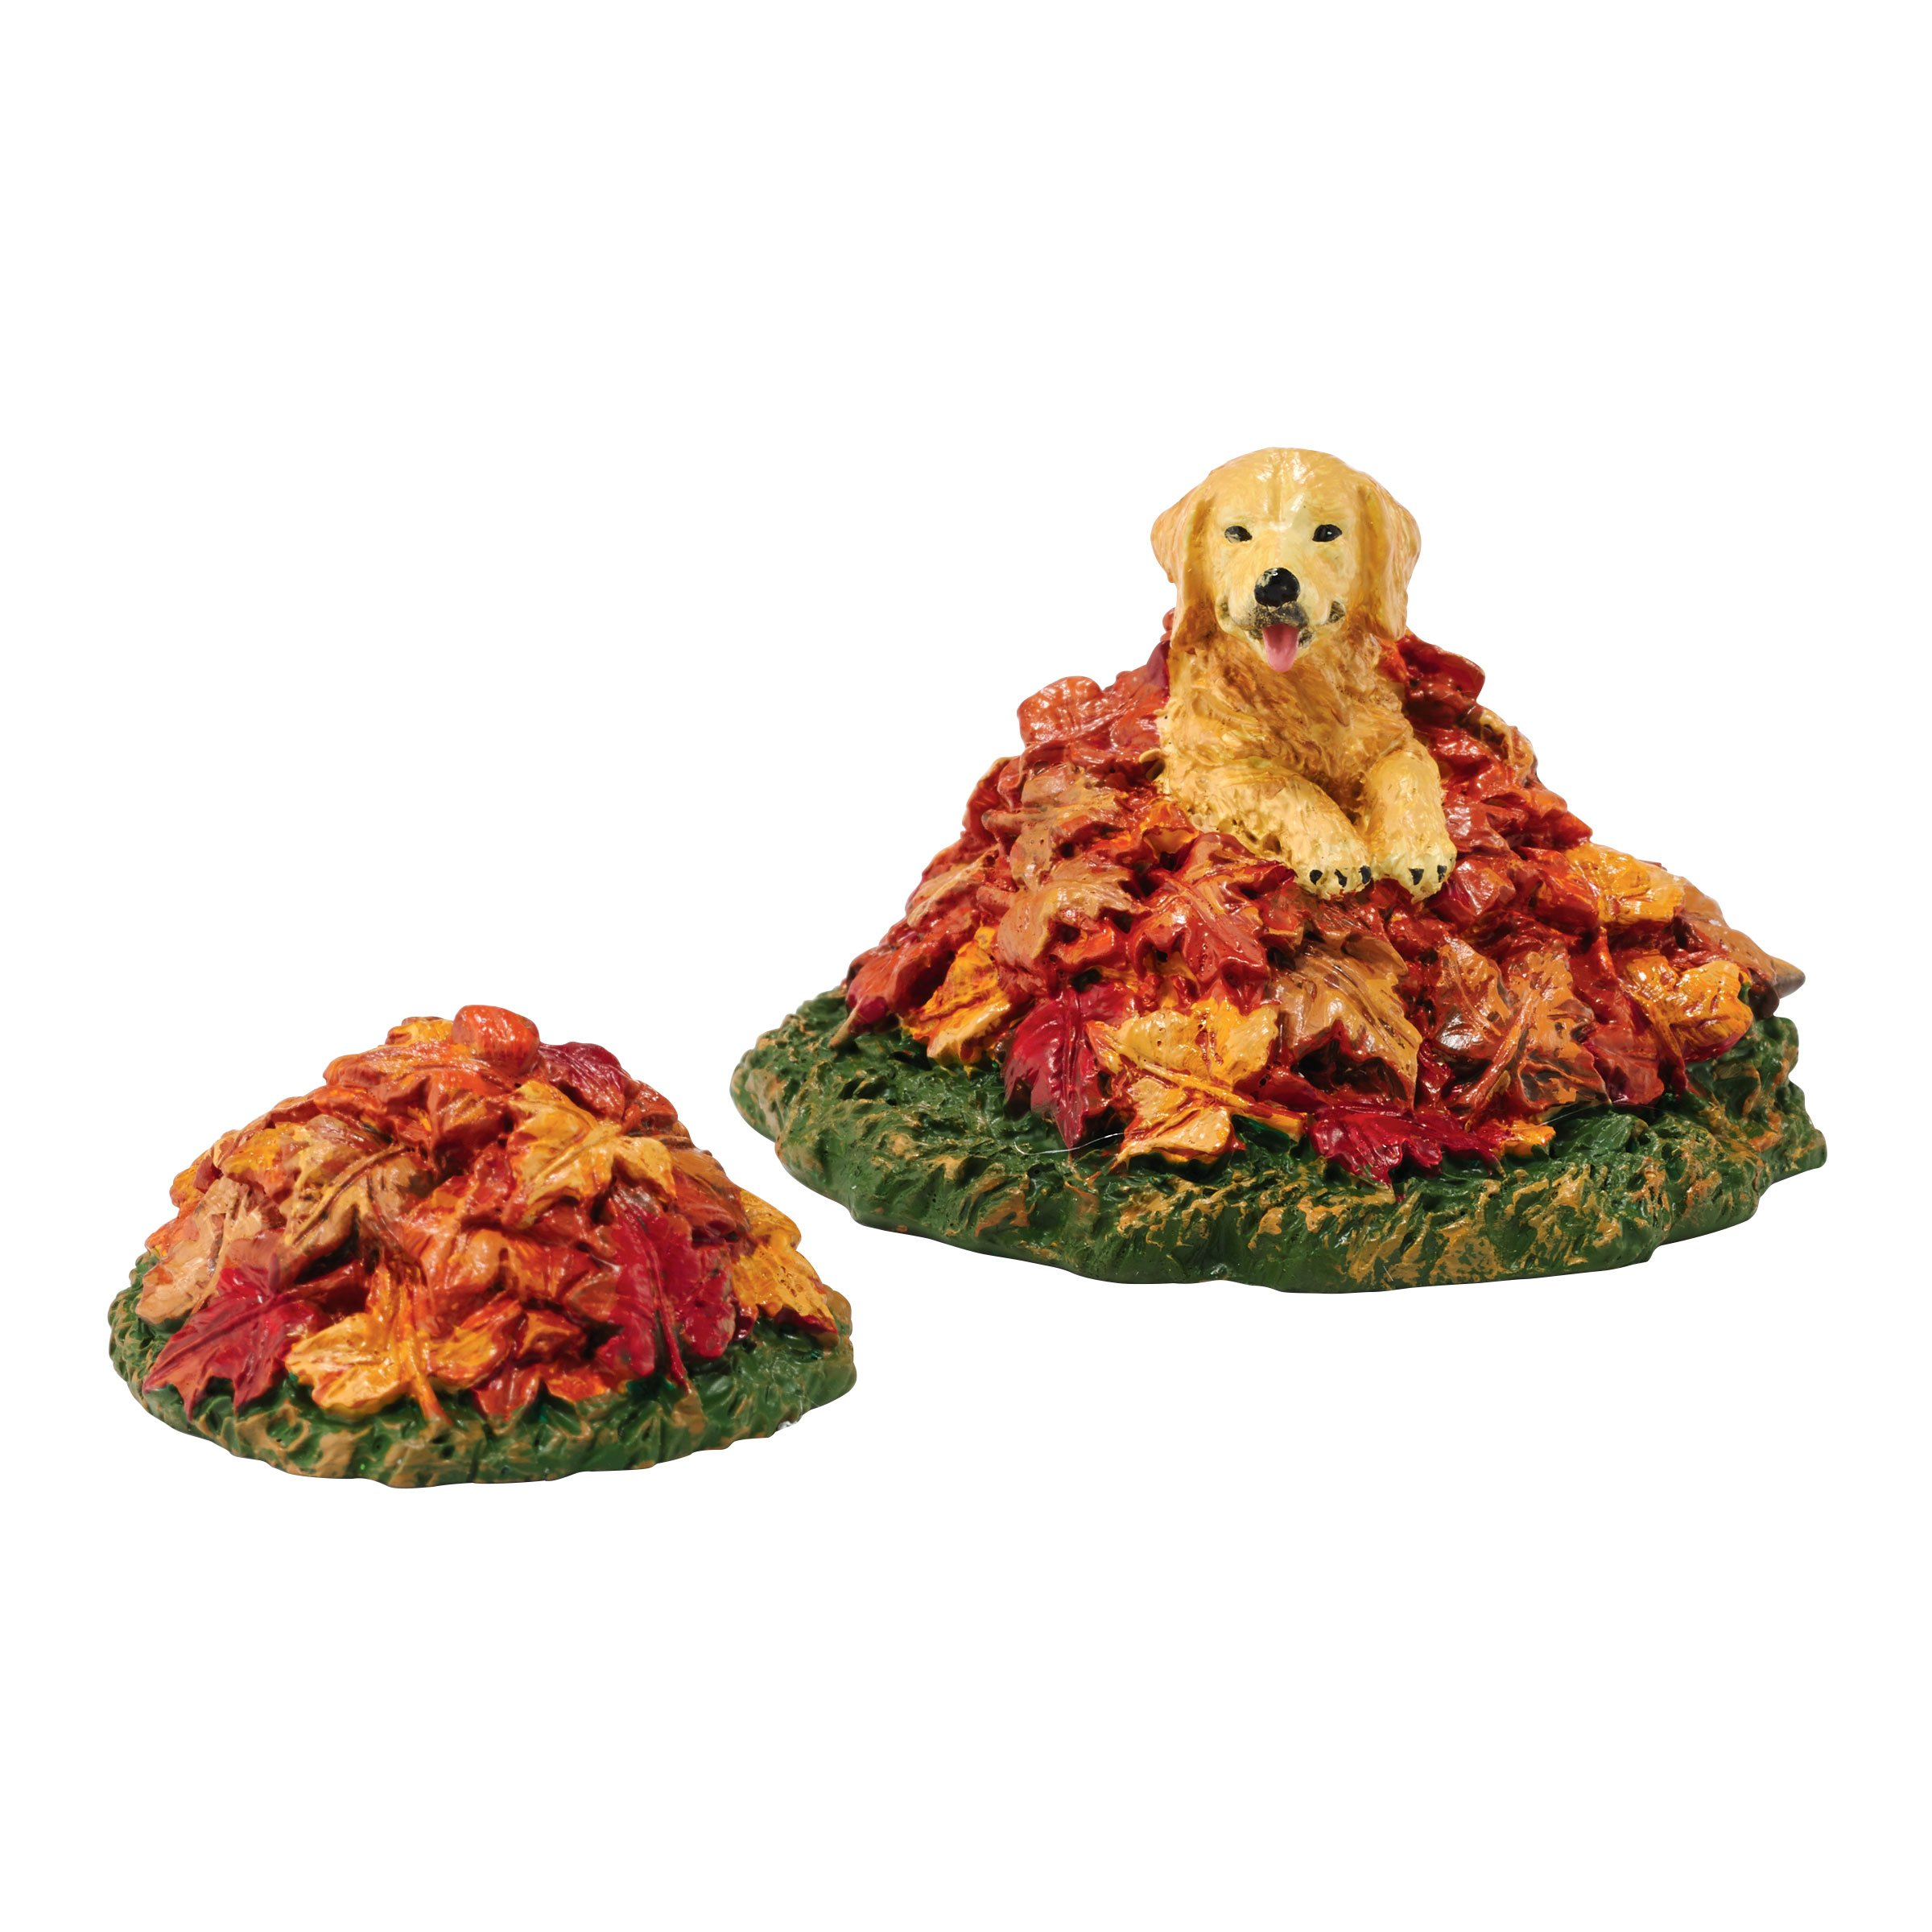 Department 56 Accessories for Villages Harvest Fields Pup Accessory Figurine